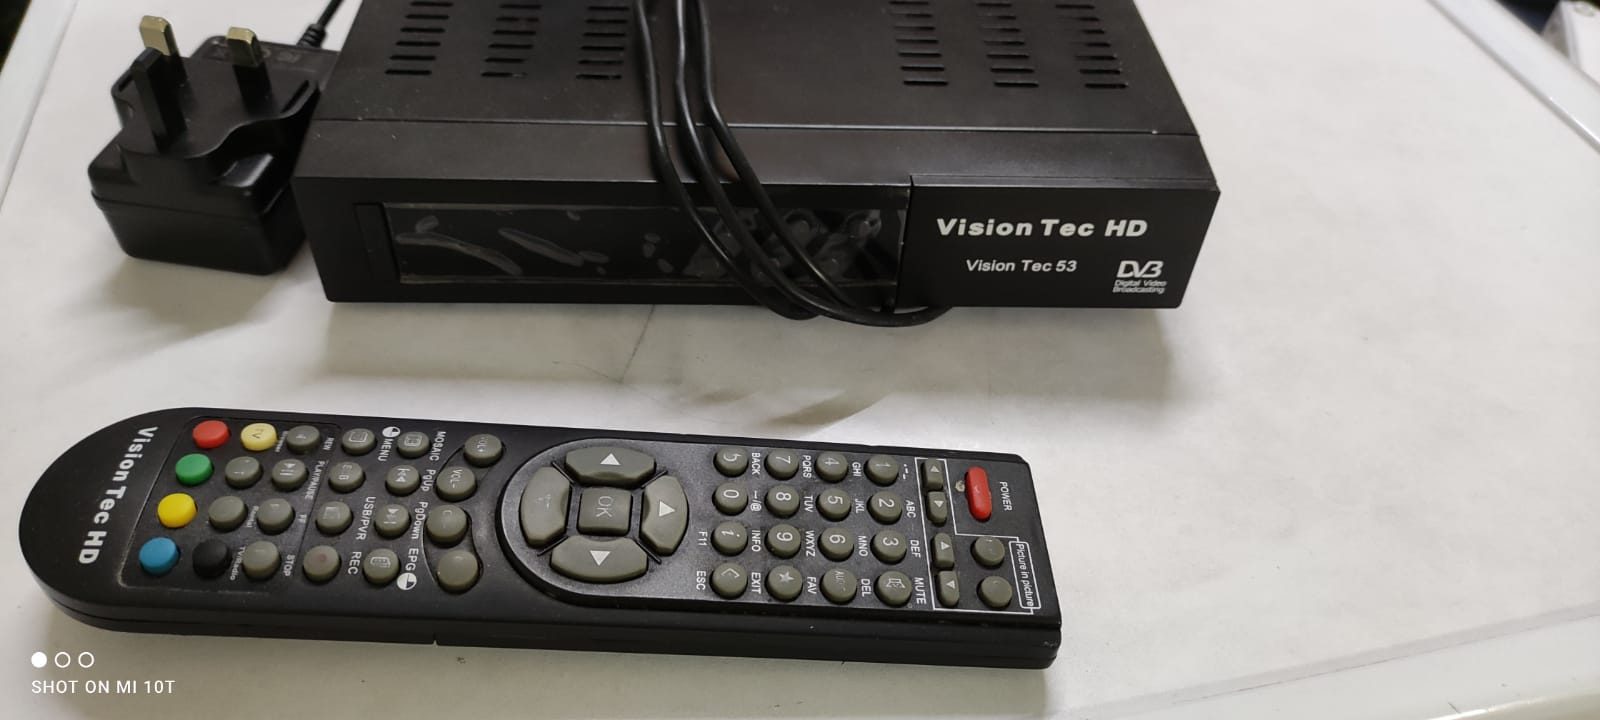 HD cable receiver